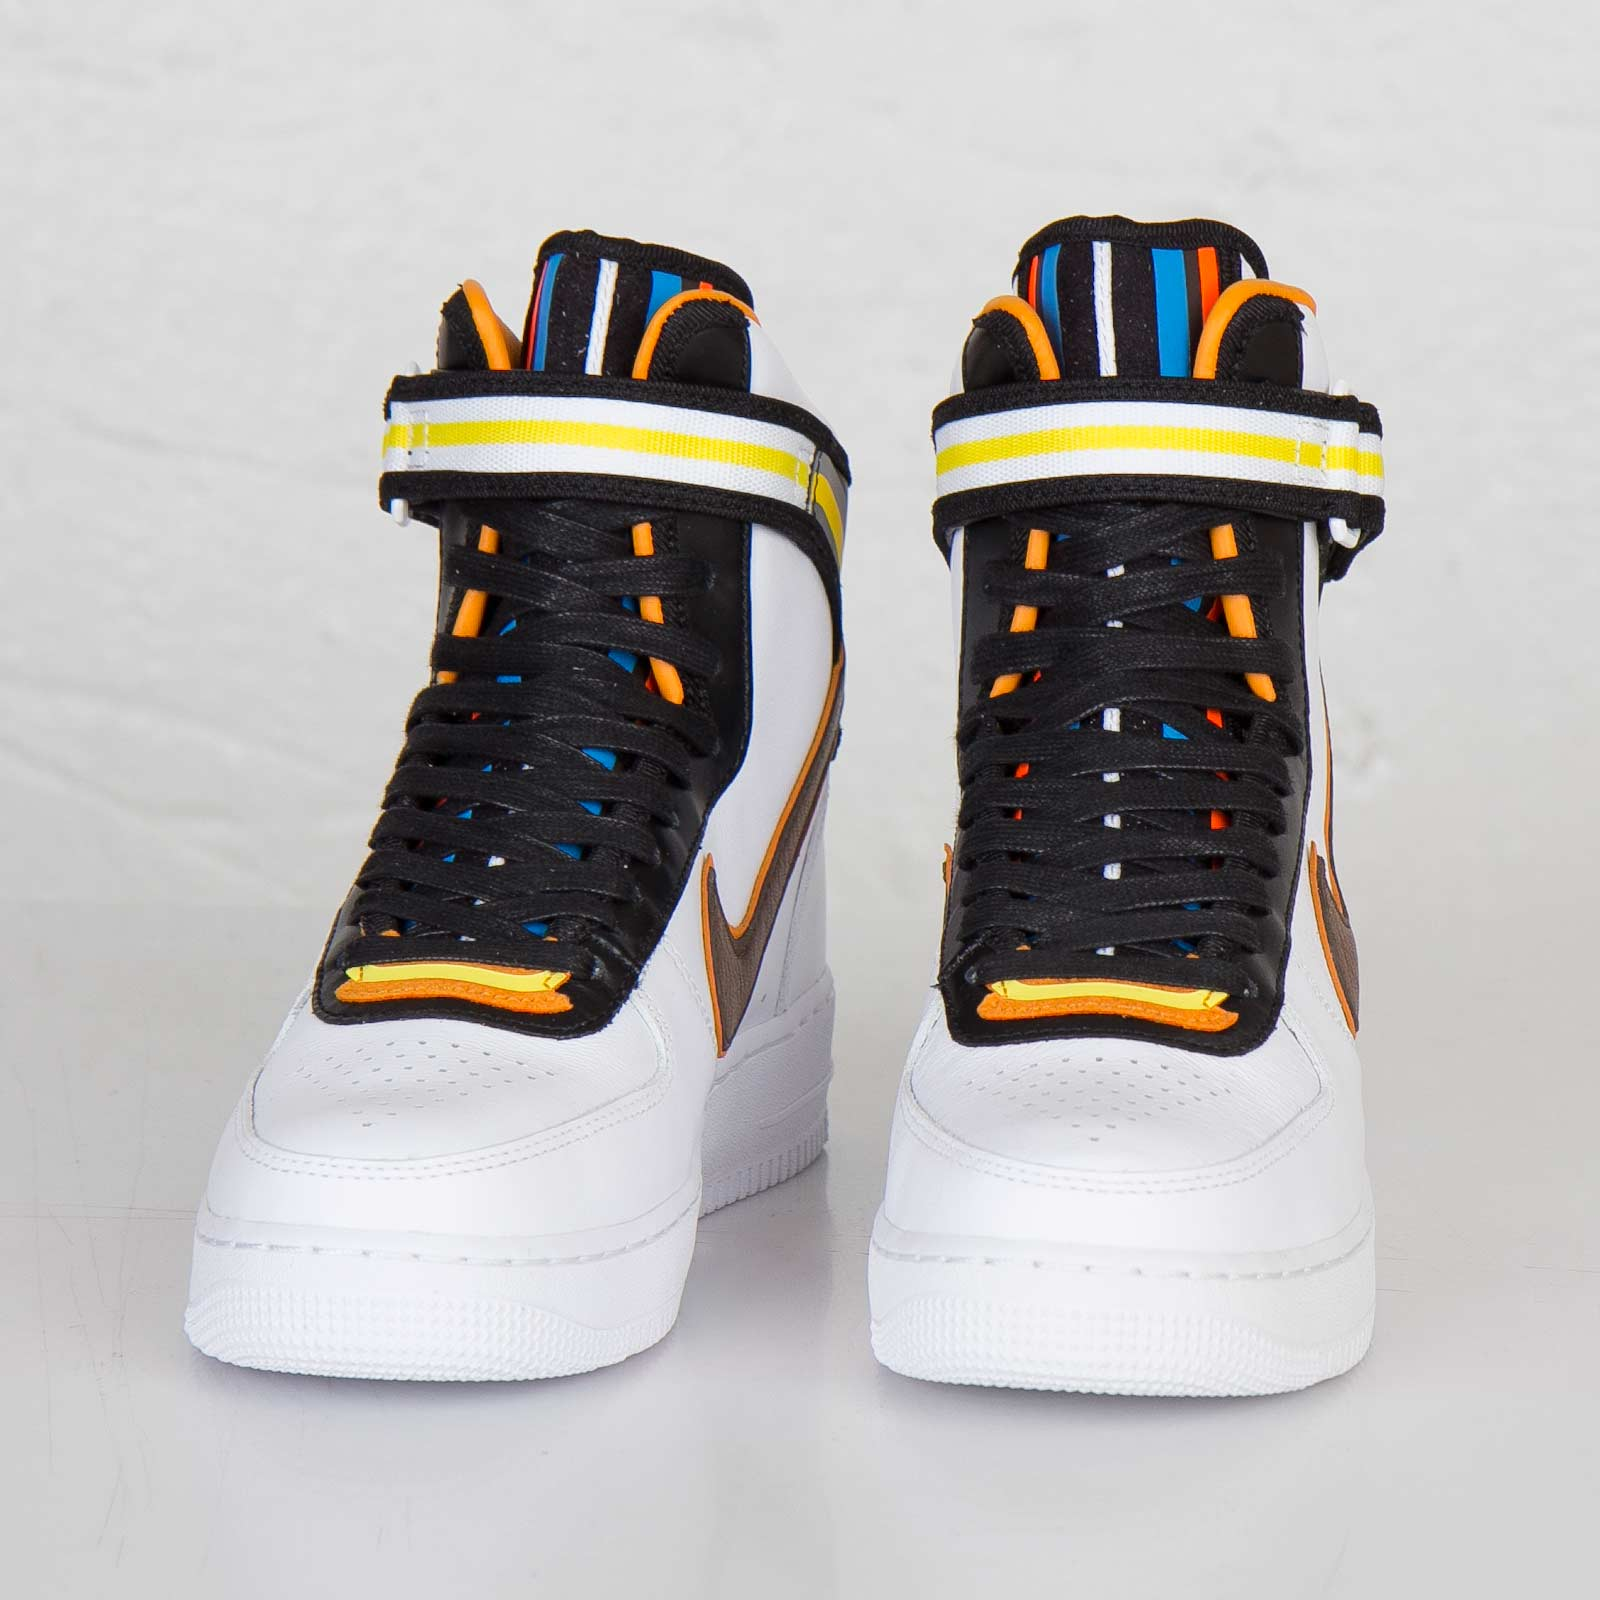 separation shoes 47d32 cd263 Nike Air Force One Hi SP Tisci - 669919-120 - Sneakersnstuff   sneakers    streetwear online since 1999